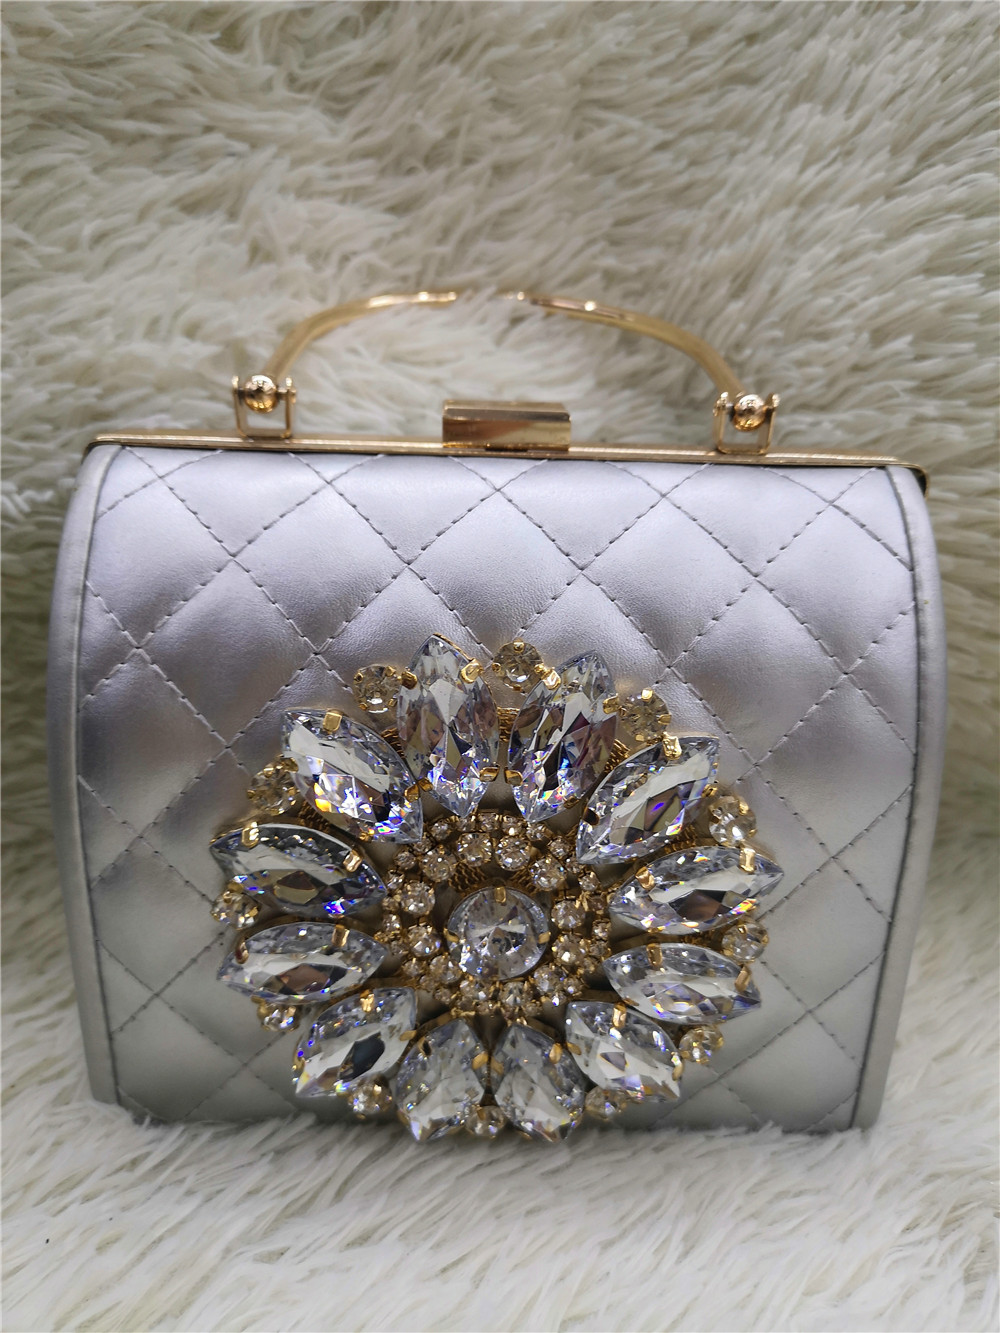 Chaliwini Clutch Bag Ladies Clutch Purses Bridal Evening Crystal Summer Bags For Women 2019 Luxury Small Cross Body Bags